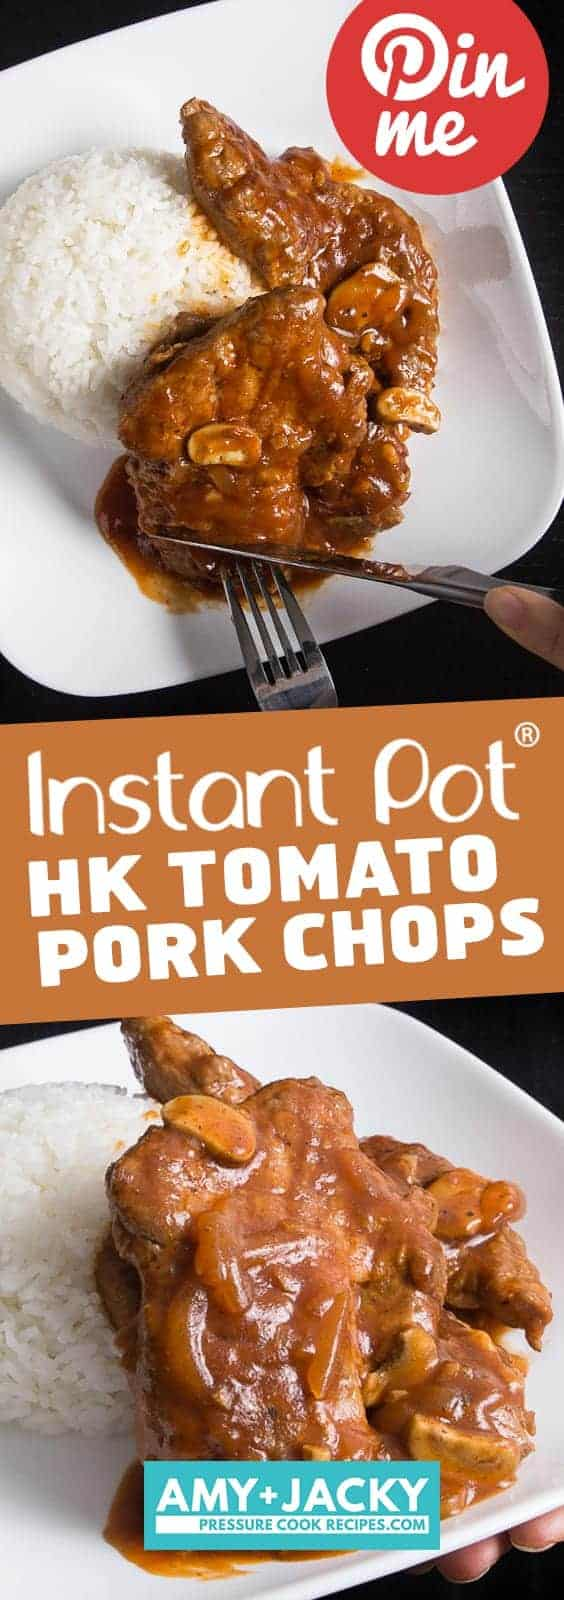 Instant Pot Pork Chops | Instapot Pork Chops | Instant Pot Pork | Pressure Cooker Pork Chops | Pork Recipes | #instantpot #instantpotrecipes #recipes #chinese #pork